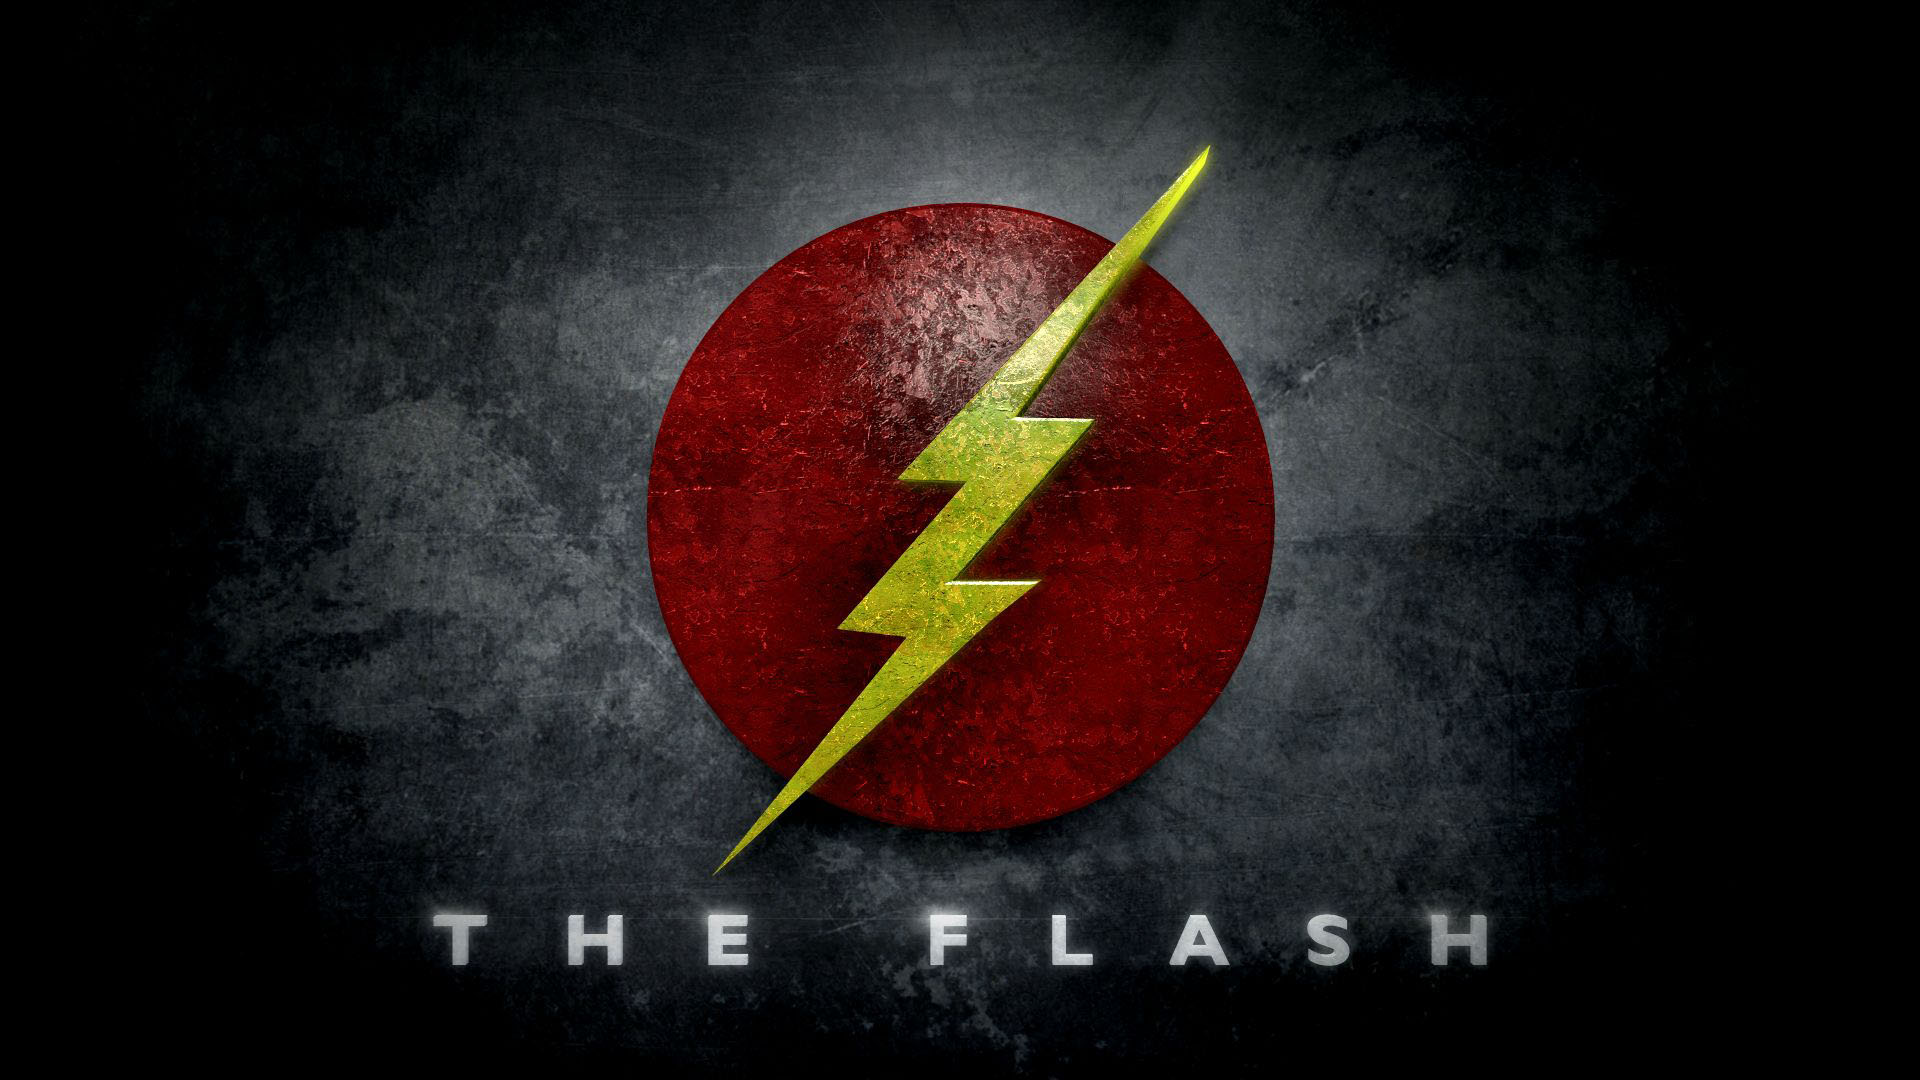 Flash Symbol Wallpaper   1920x1080